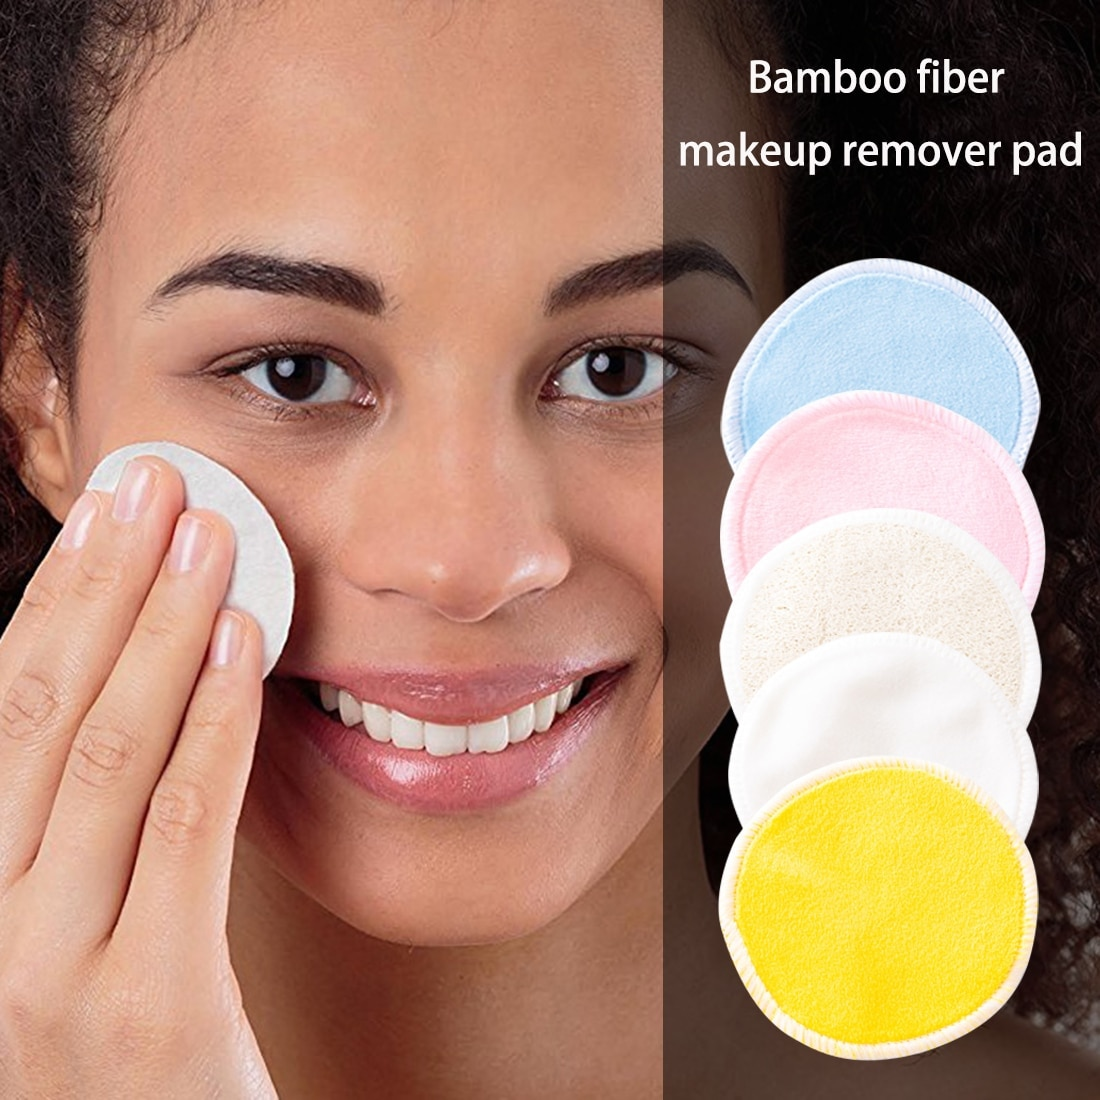 Reusable Bamboo Makeup Remover Pads 12pcs/Pack Washable Rounds Cleansing Facial Cotton Make Up Removal Tool